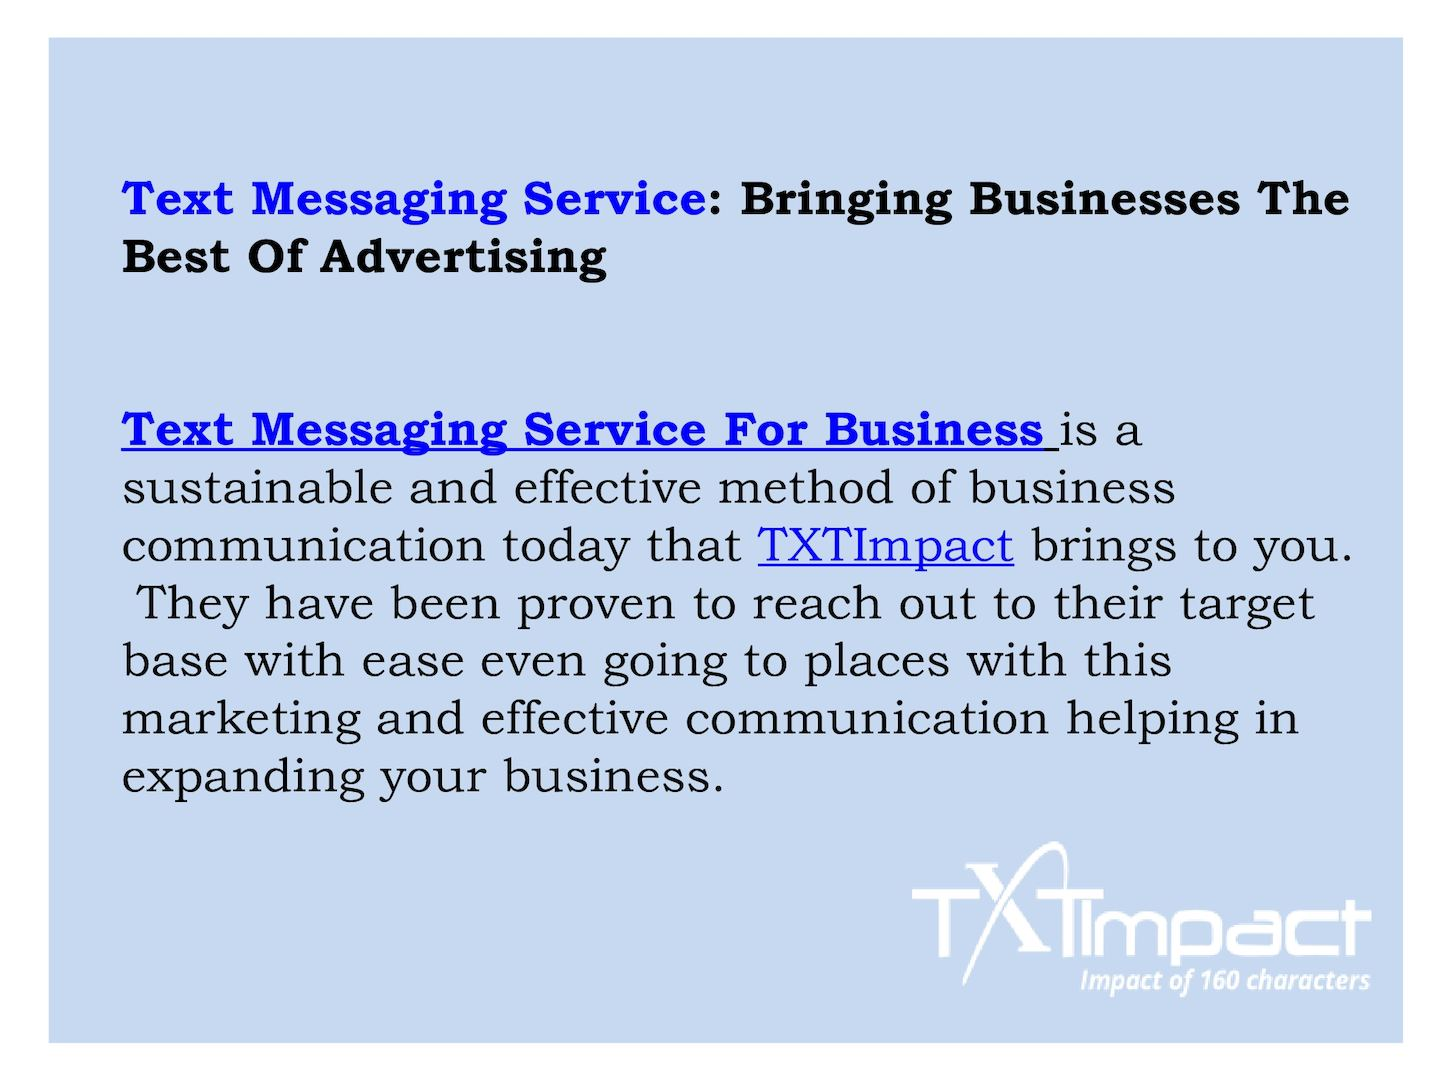 Calaméo - Text Messaging Service For Business | Business Text Messaging